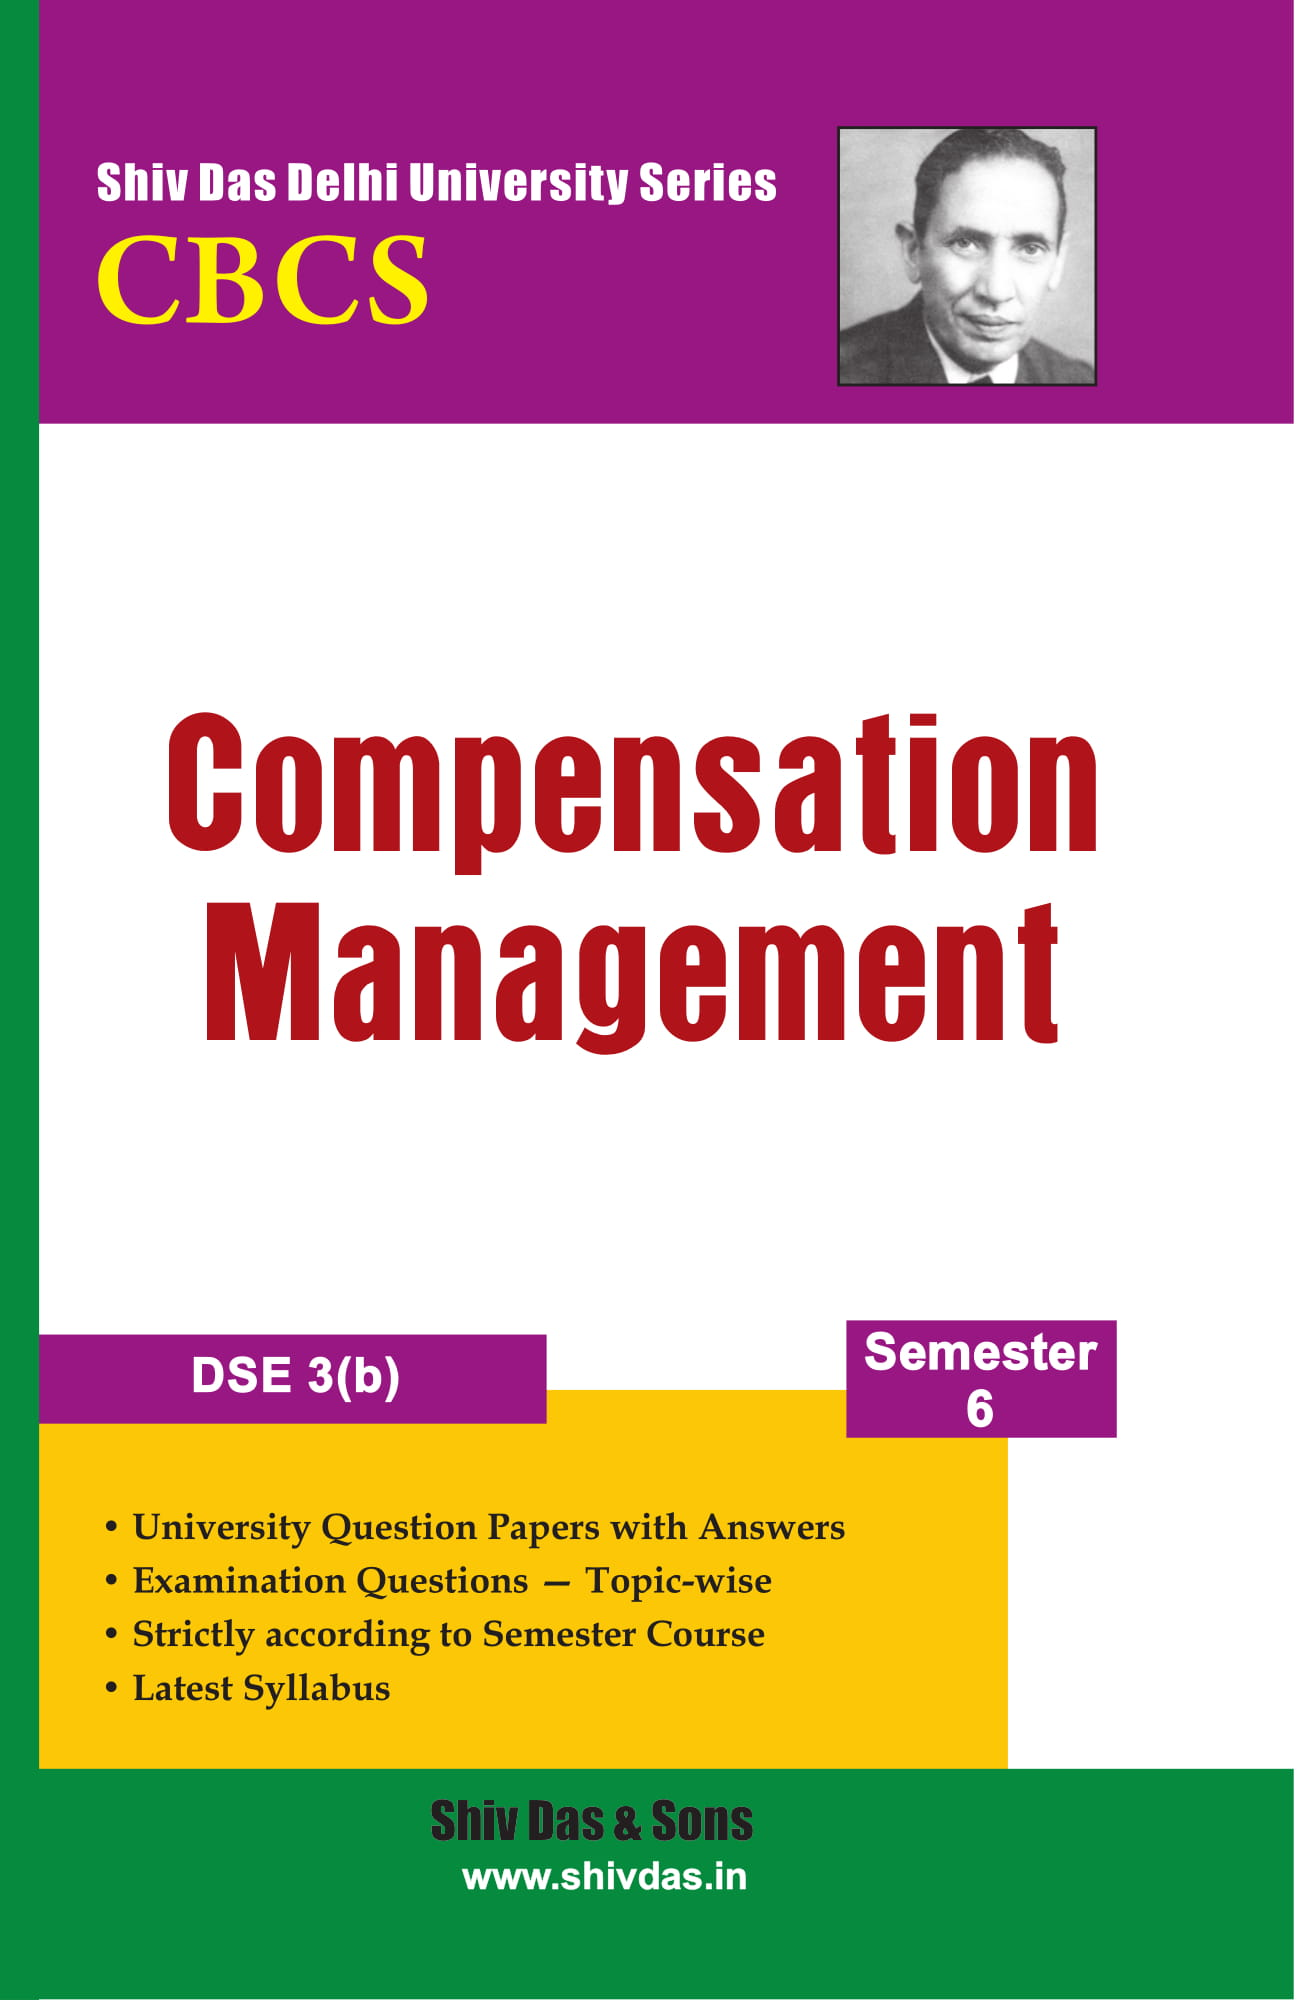 Compensation Management for B.Com Hons Semester 6